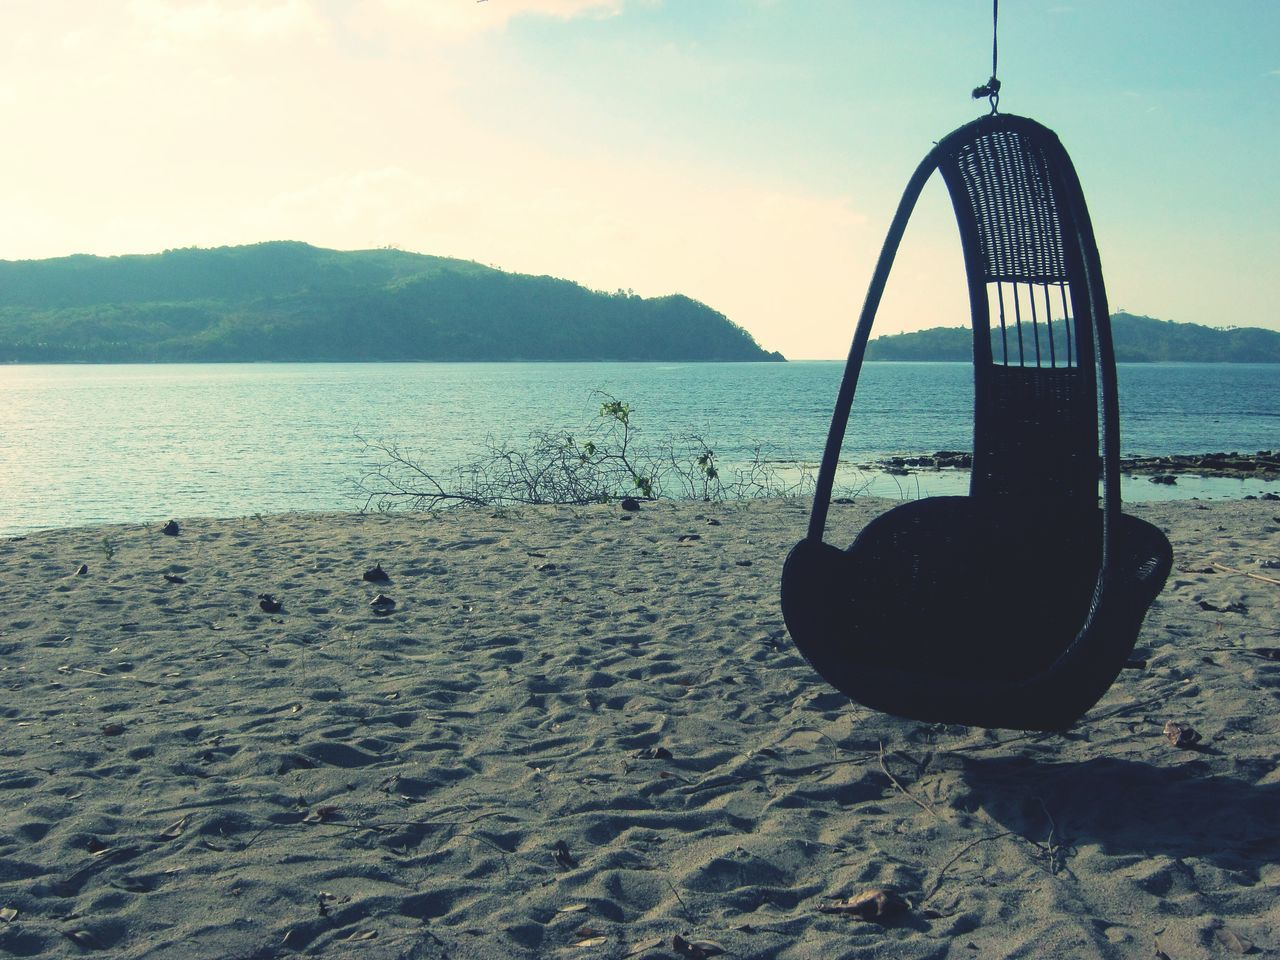 water, nature, sand, sea, no people, beauty in nature, sky, scenics, beach, tranquility, outdoors, day, hanging, close-up